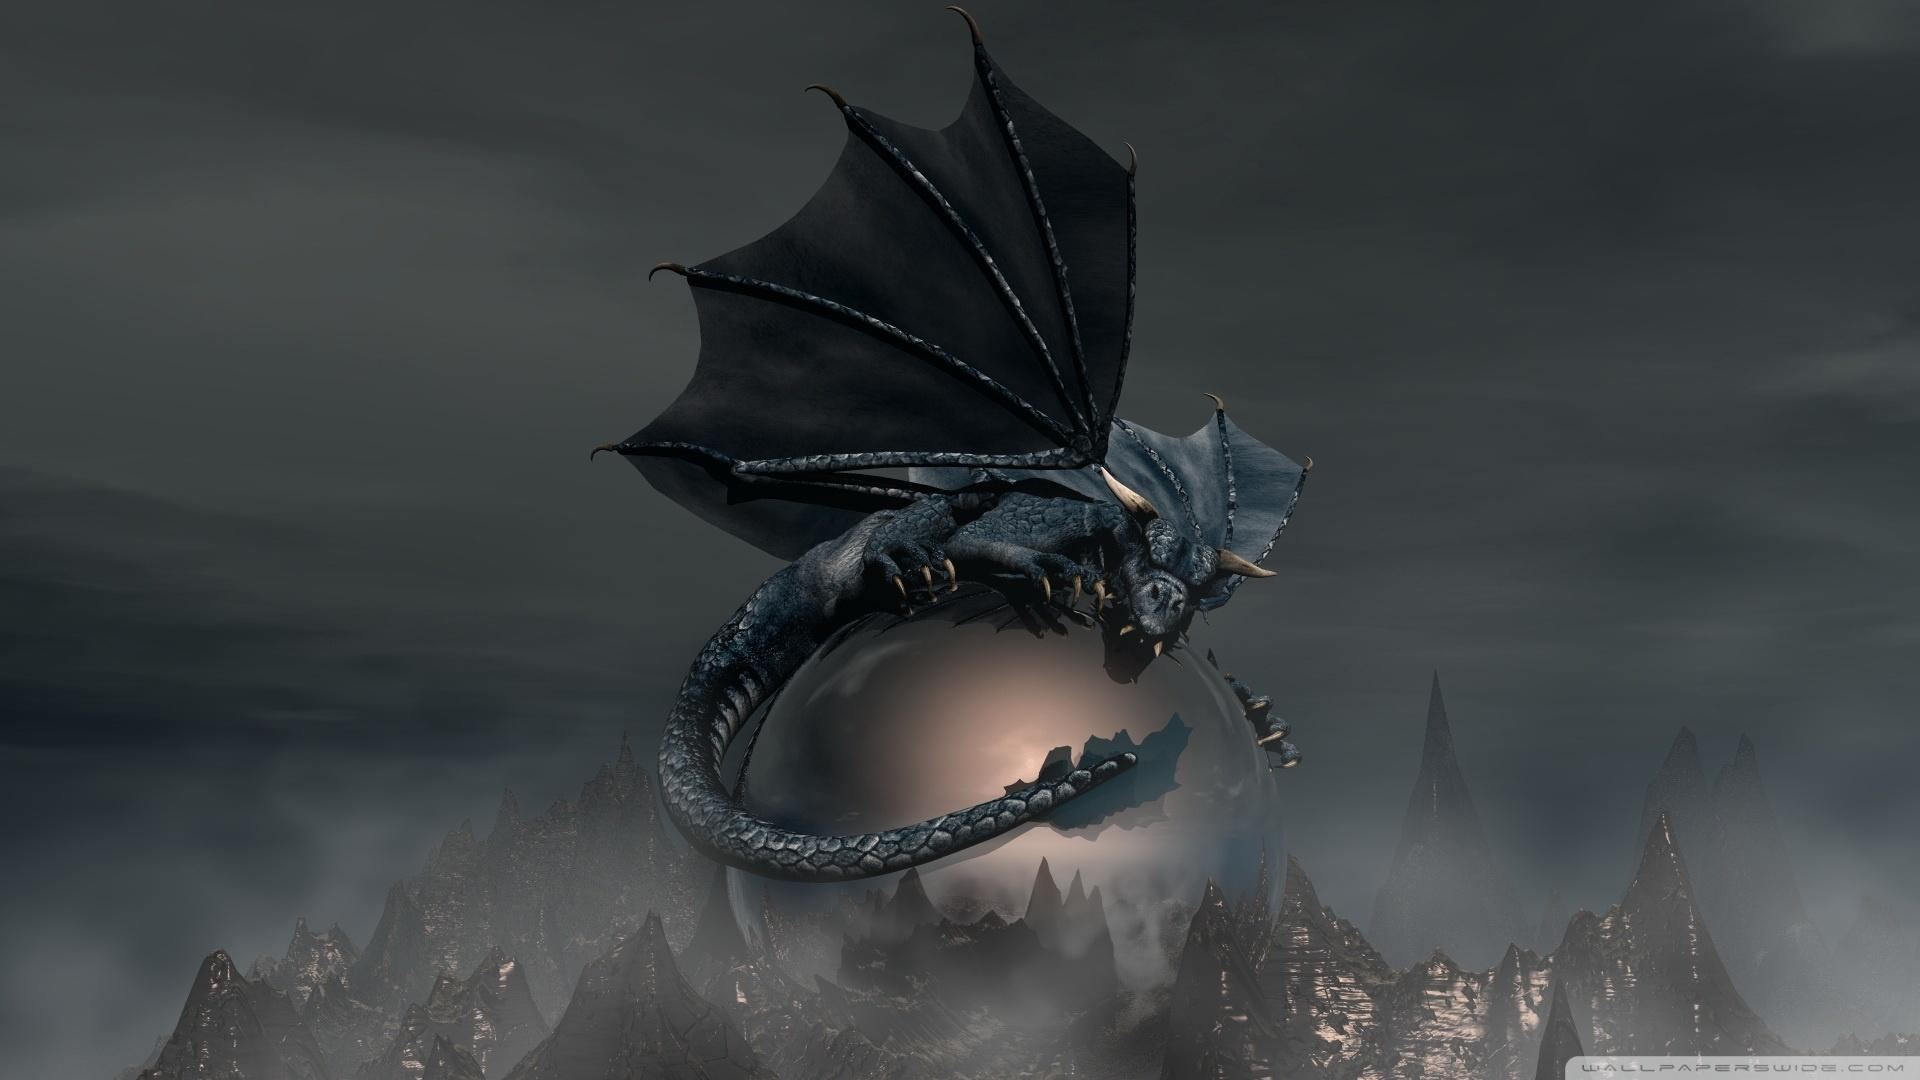 Black Dragon Hd Live Wallpaper For Android Apk Download